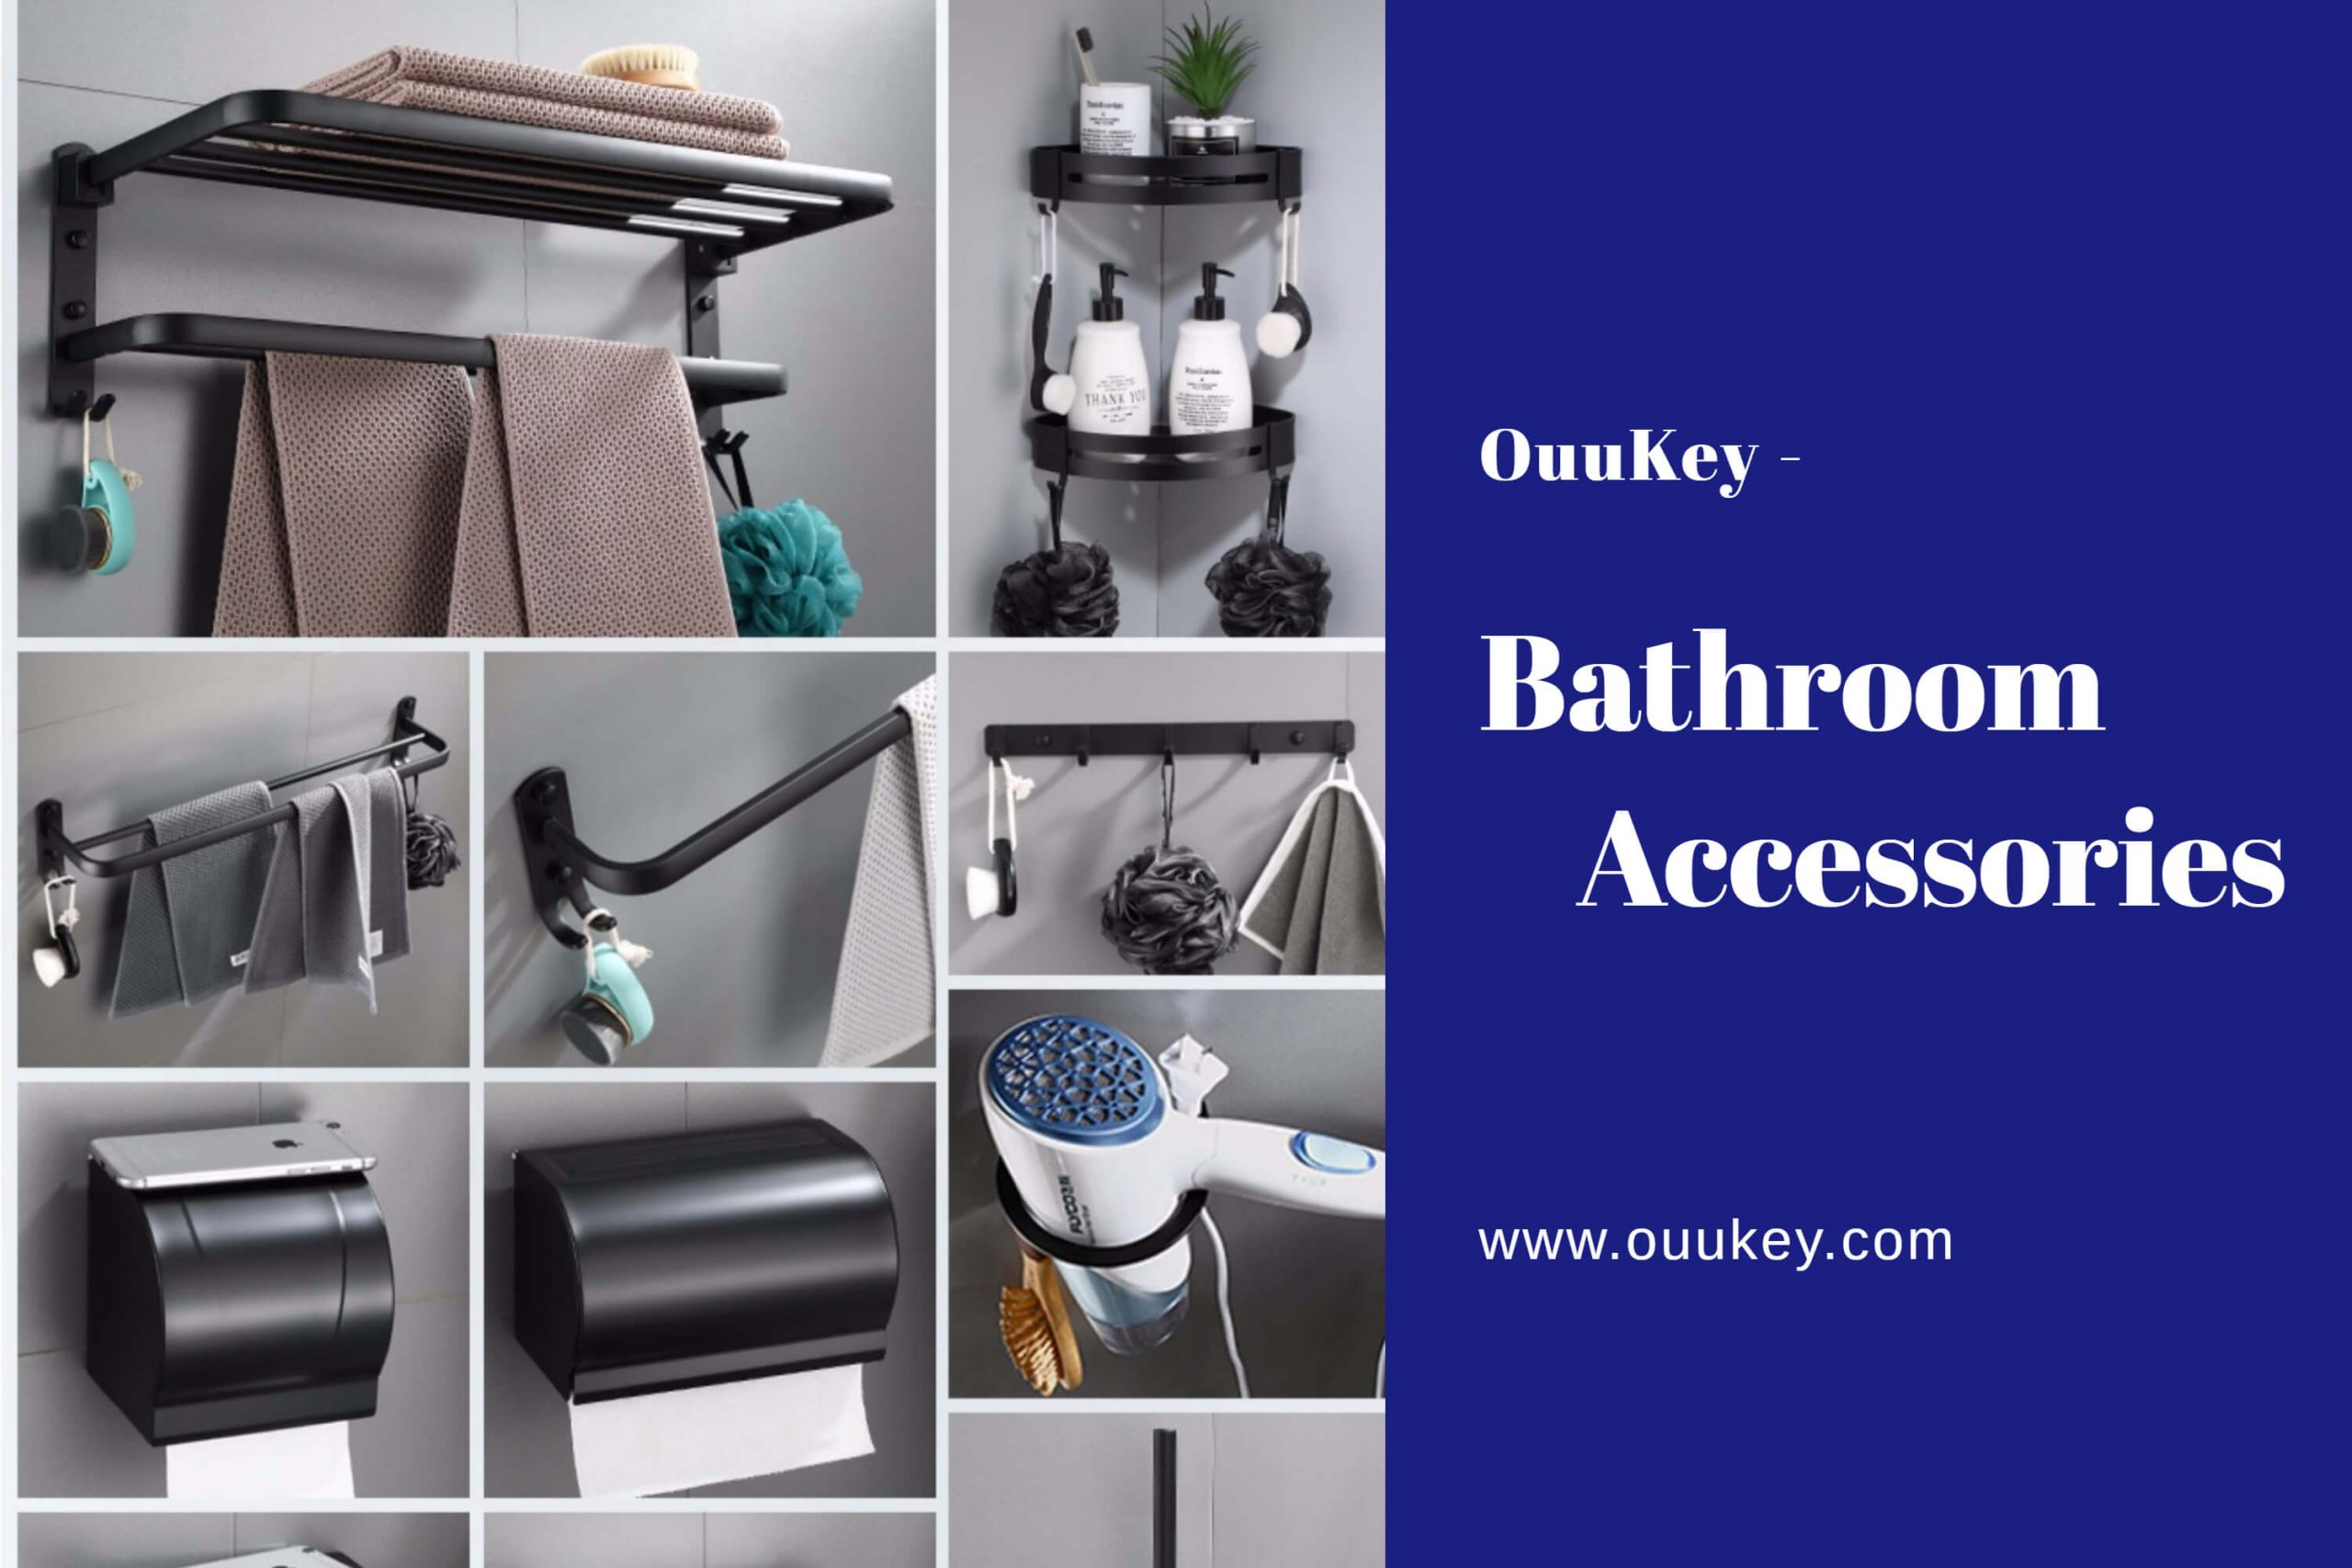 ouukey market bathroom accessories manufacturer